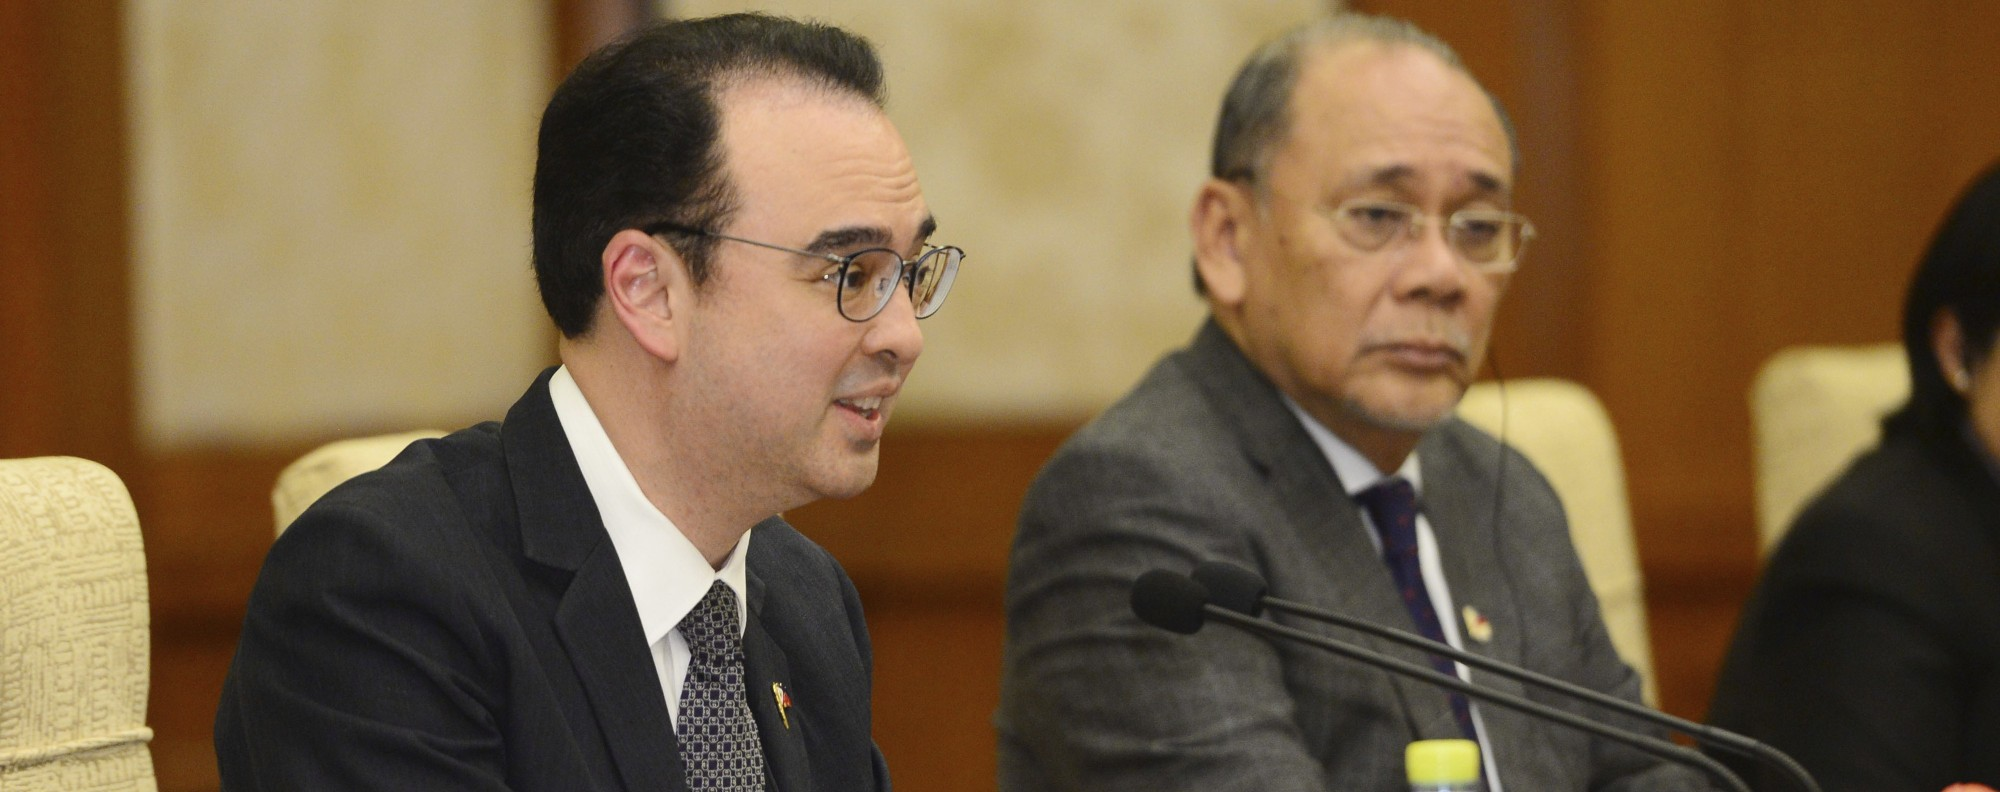 Philippine Foreign Affairs Secretary Alan Peter Cayetano, left. Photo: AP